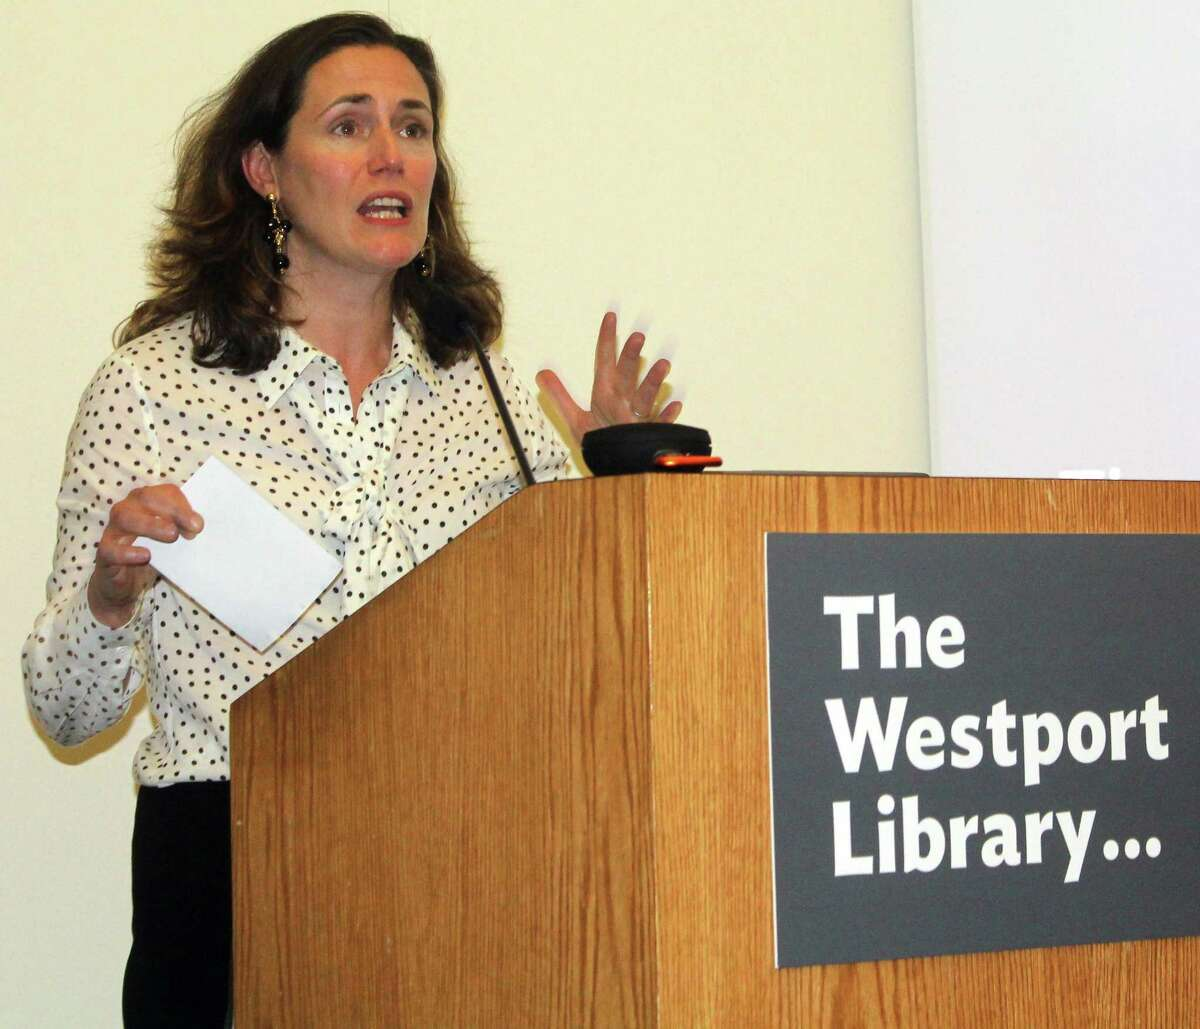 Democratic Women of Westport Co-Chair Rebecca Martin introduced political media consultant Will Robinson for his talk at the Westport Library on April 30.